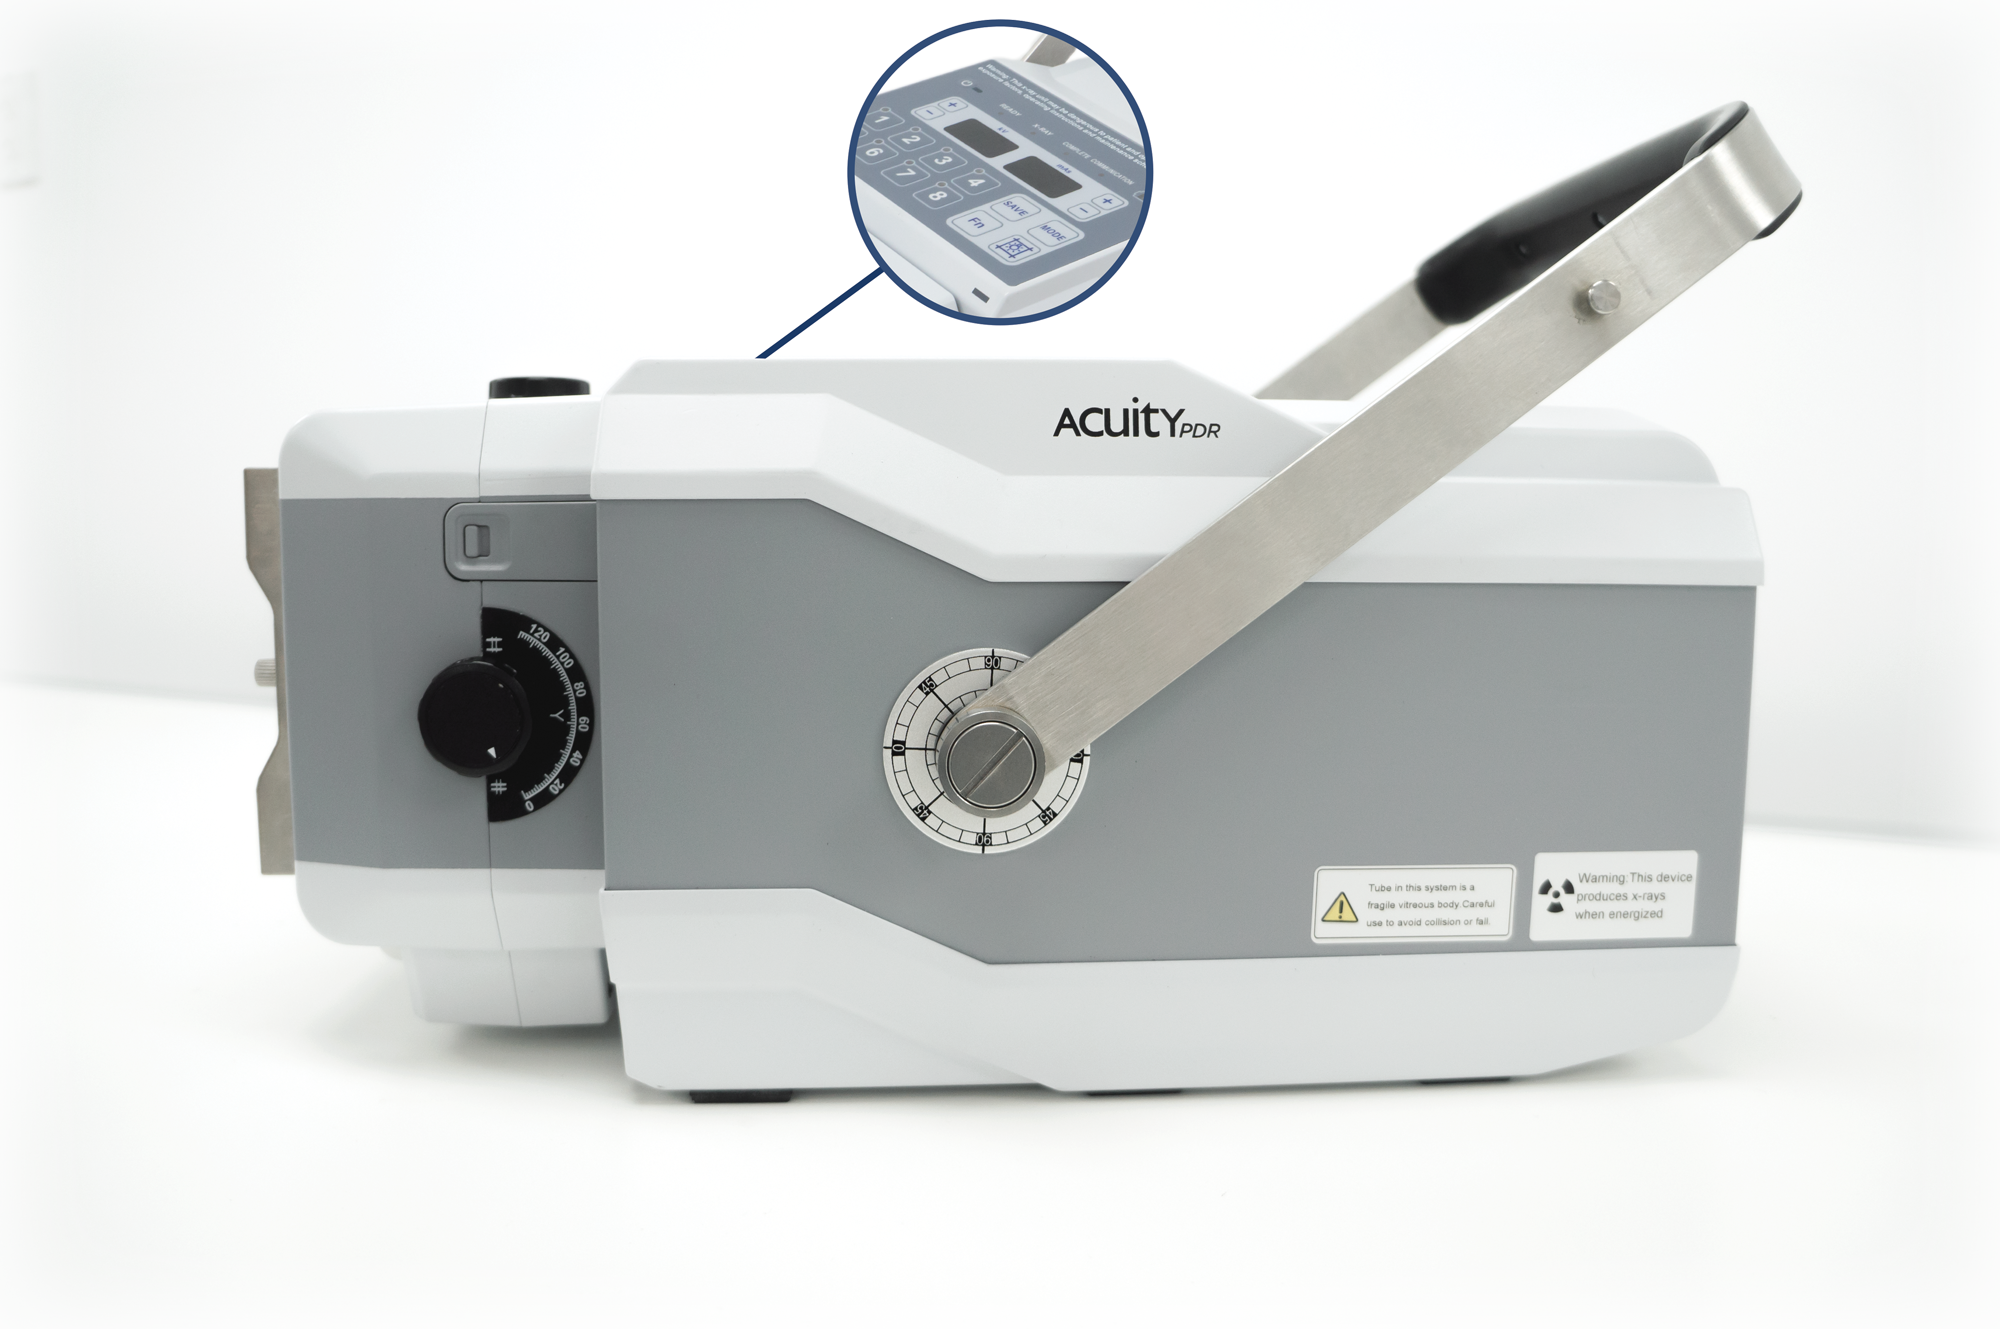 Acuity PDR X-Ray System